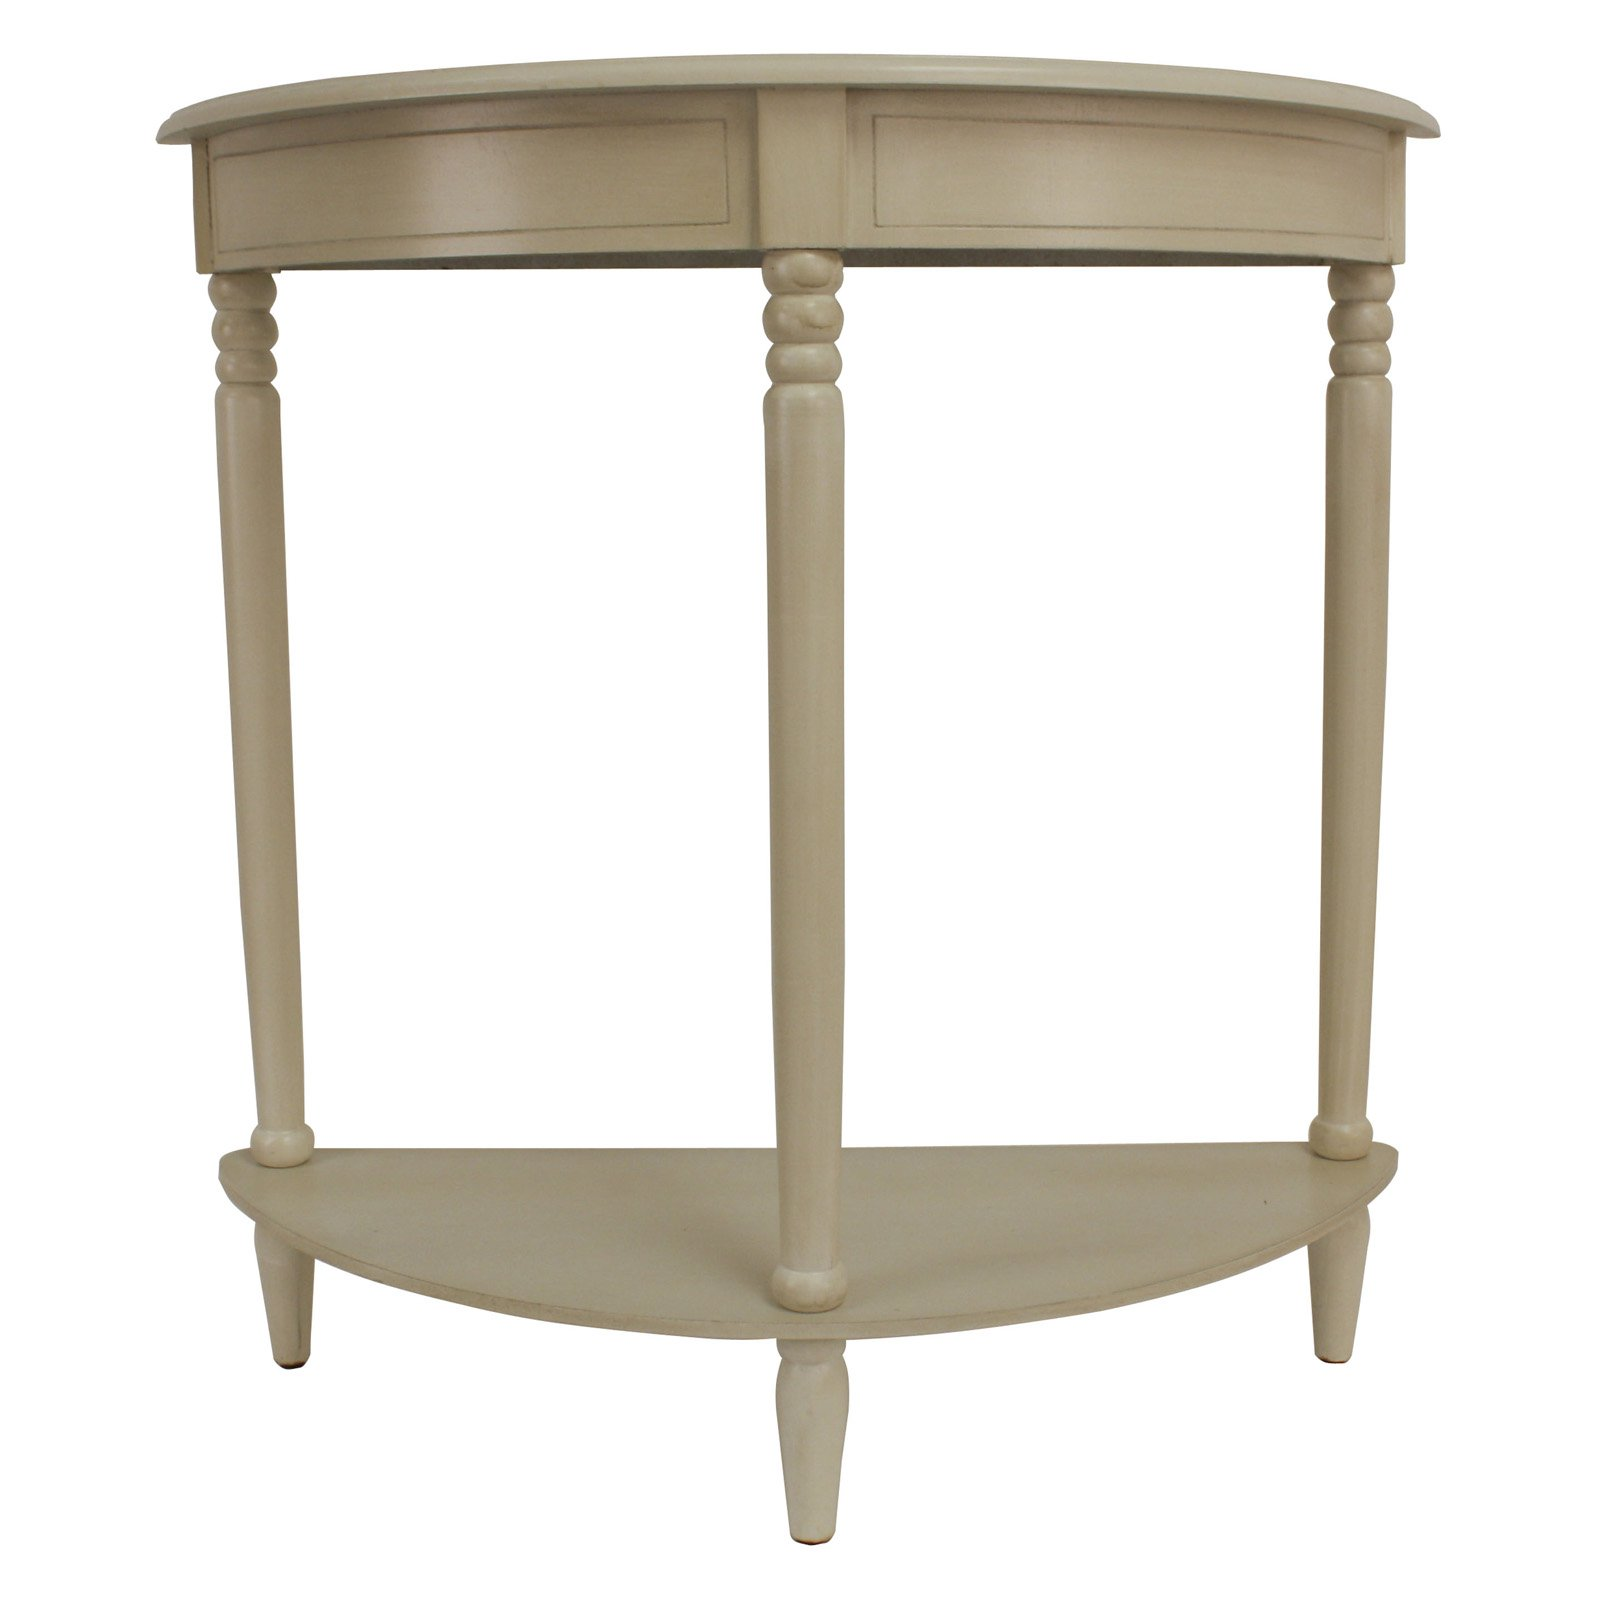 Antique White Simplicity Half Round Accent Table by Jimco Lamp